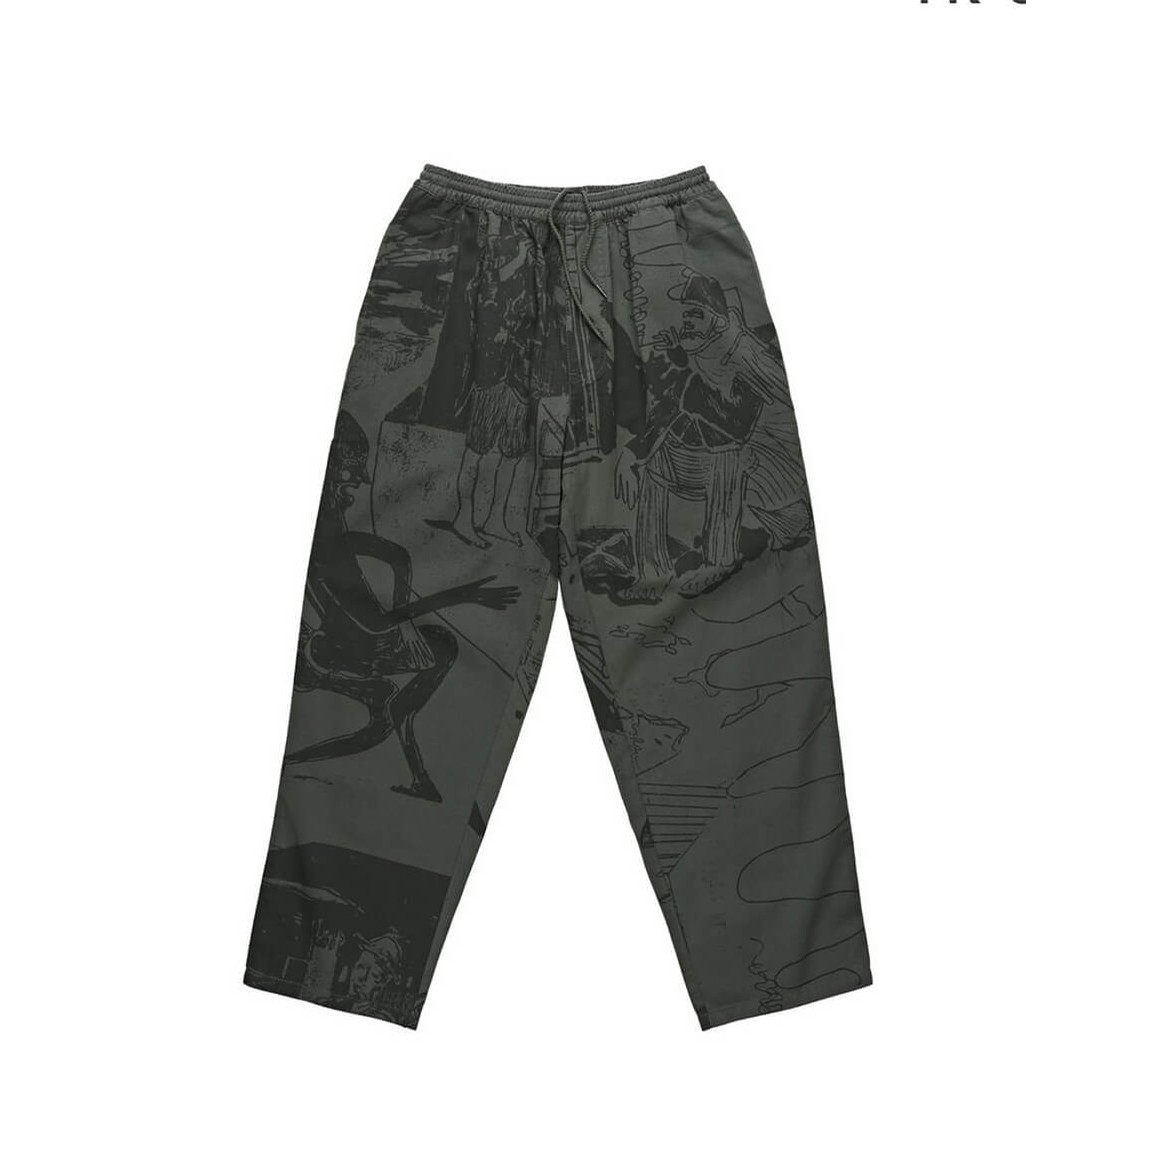 TK Surf Pants (Gray Green)